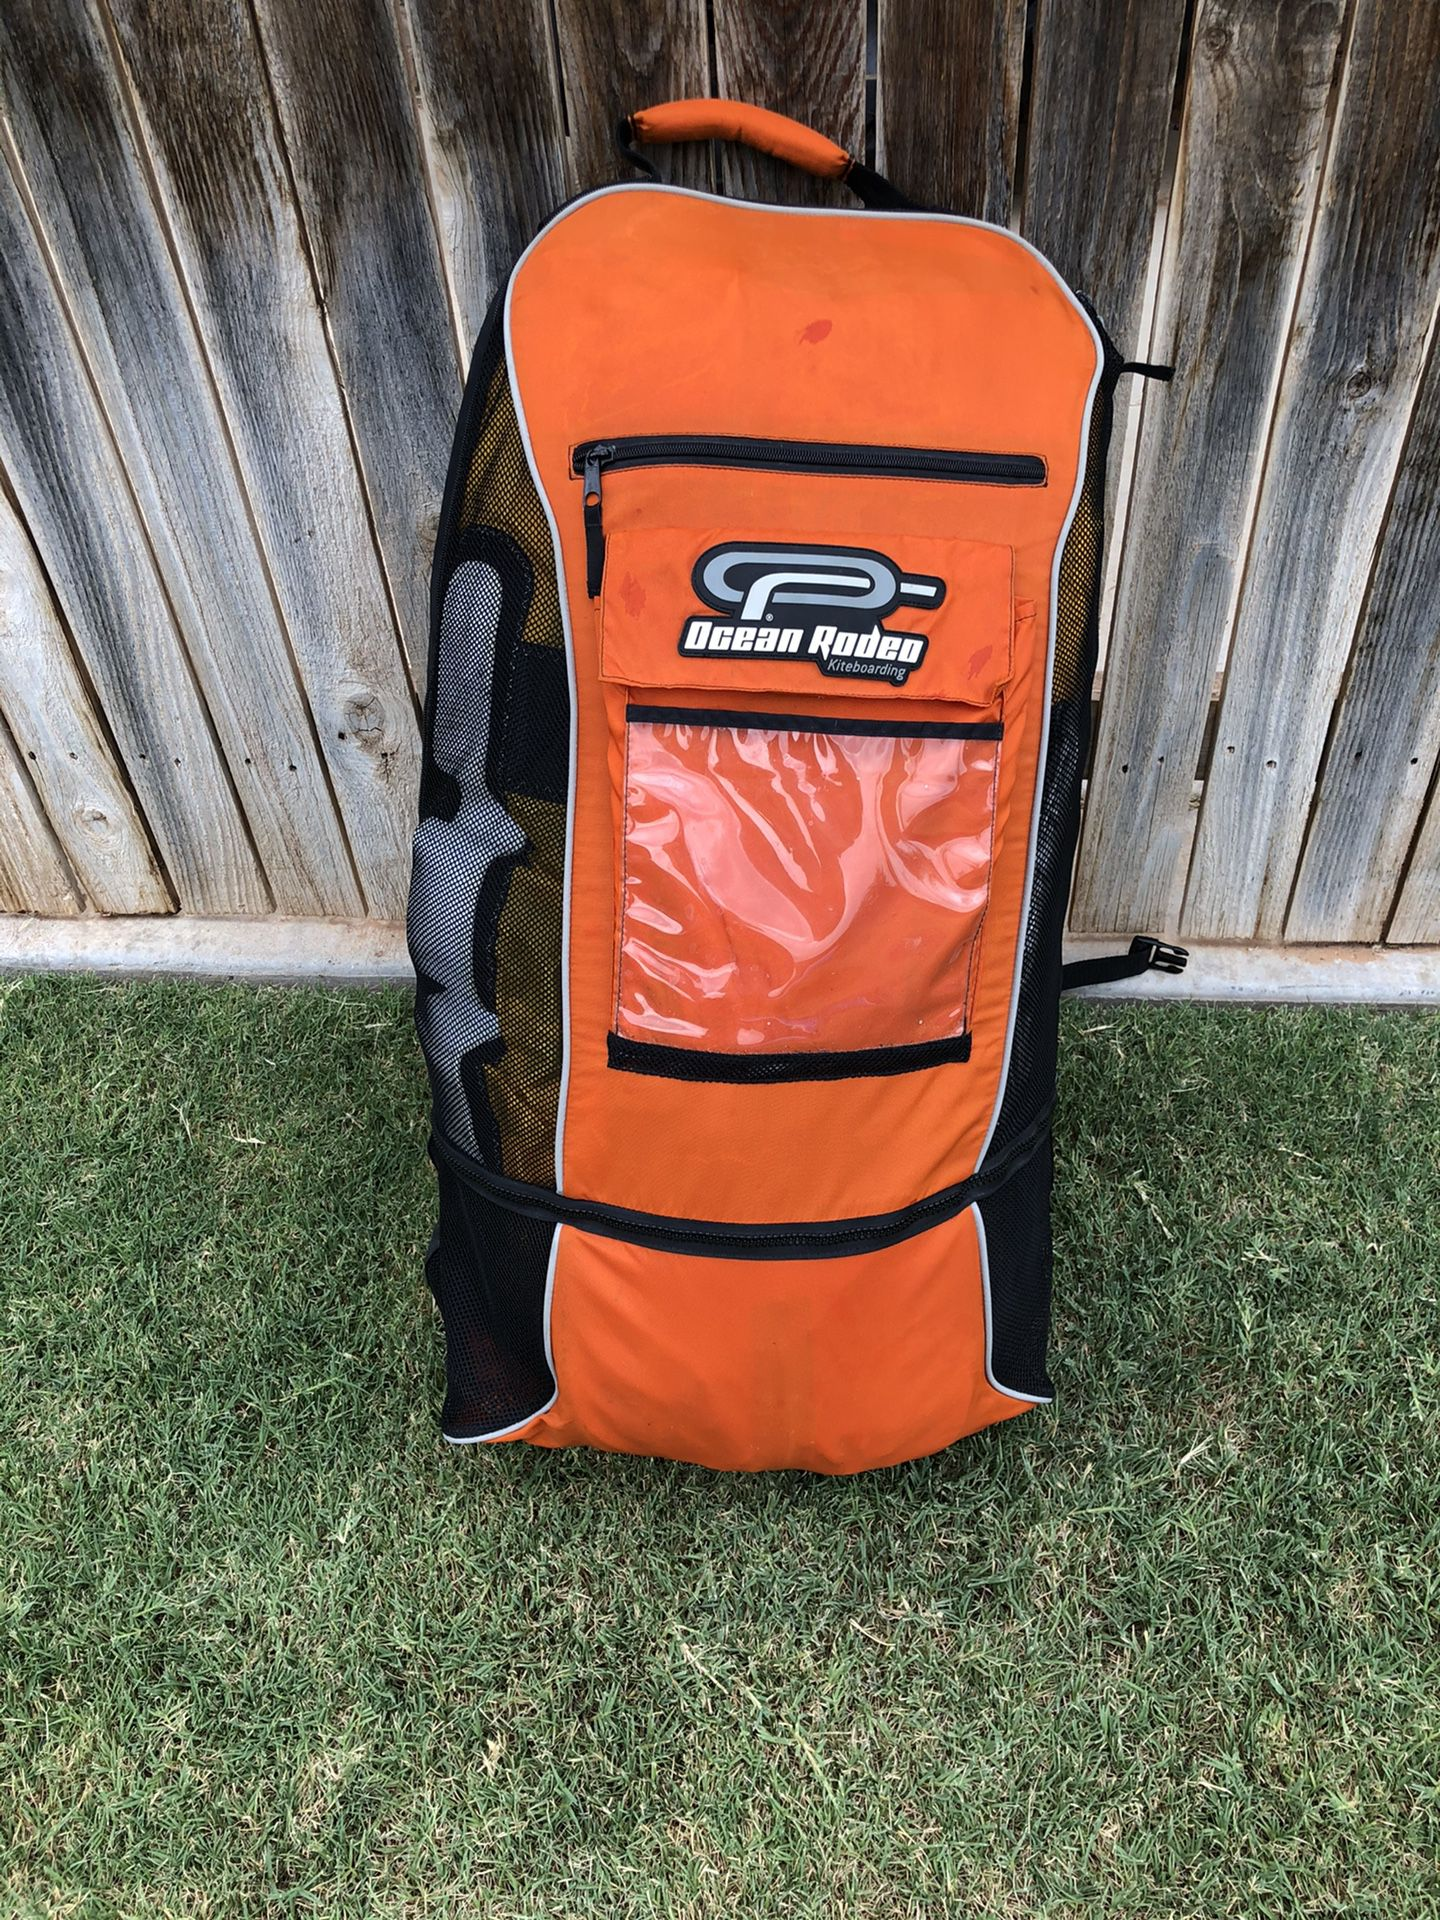 16.0 Ocean Rodeo Bronco Kiteboarding Kite and Accessories